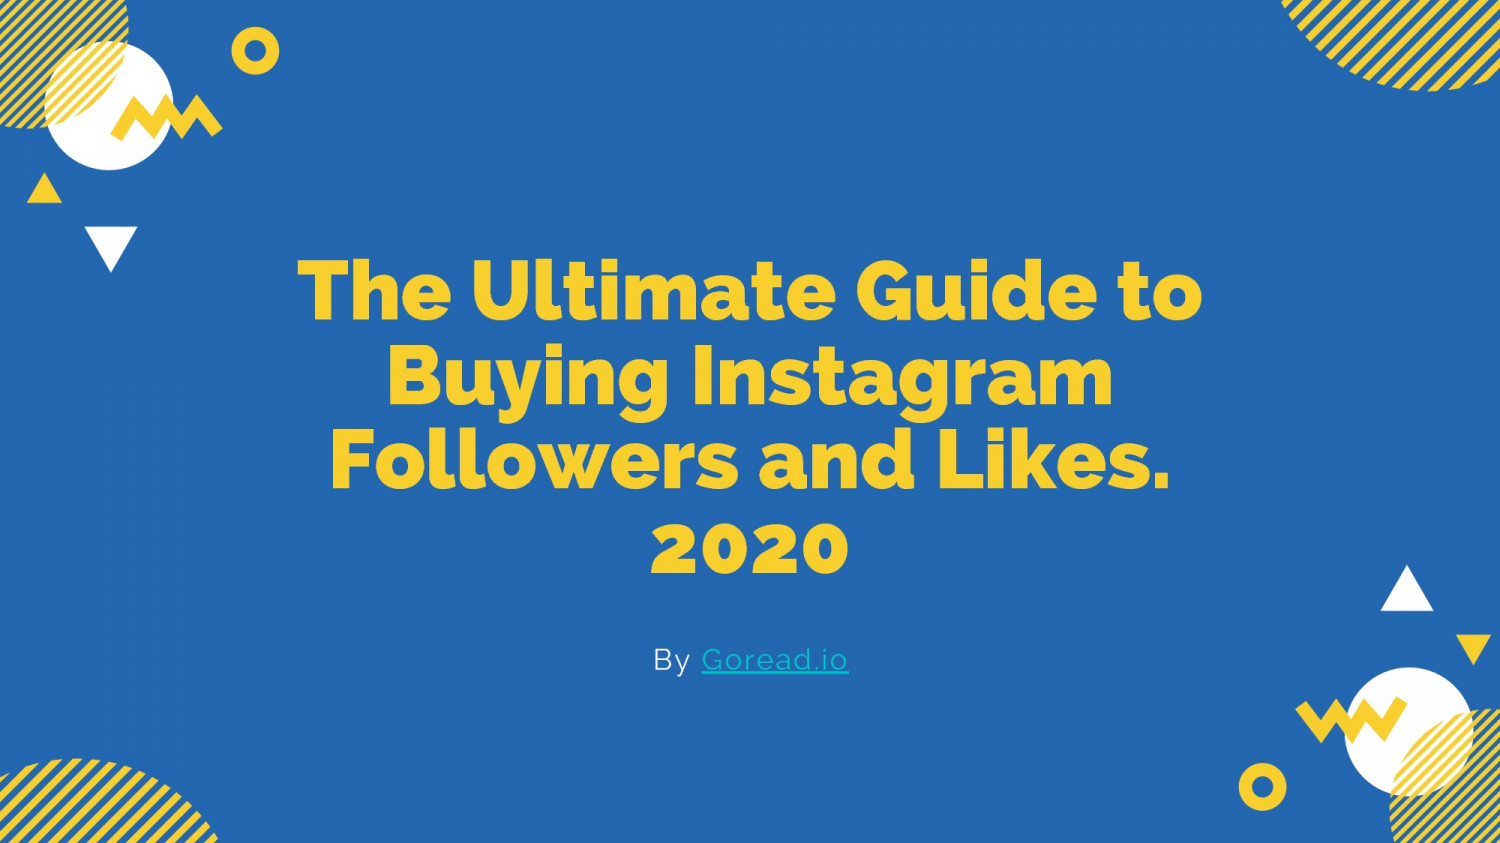 The Ultimate Guide to Buying Instagram Followers and Likes By Goread.io Infographic